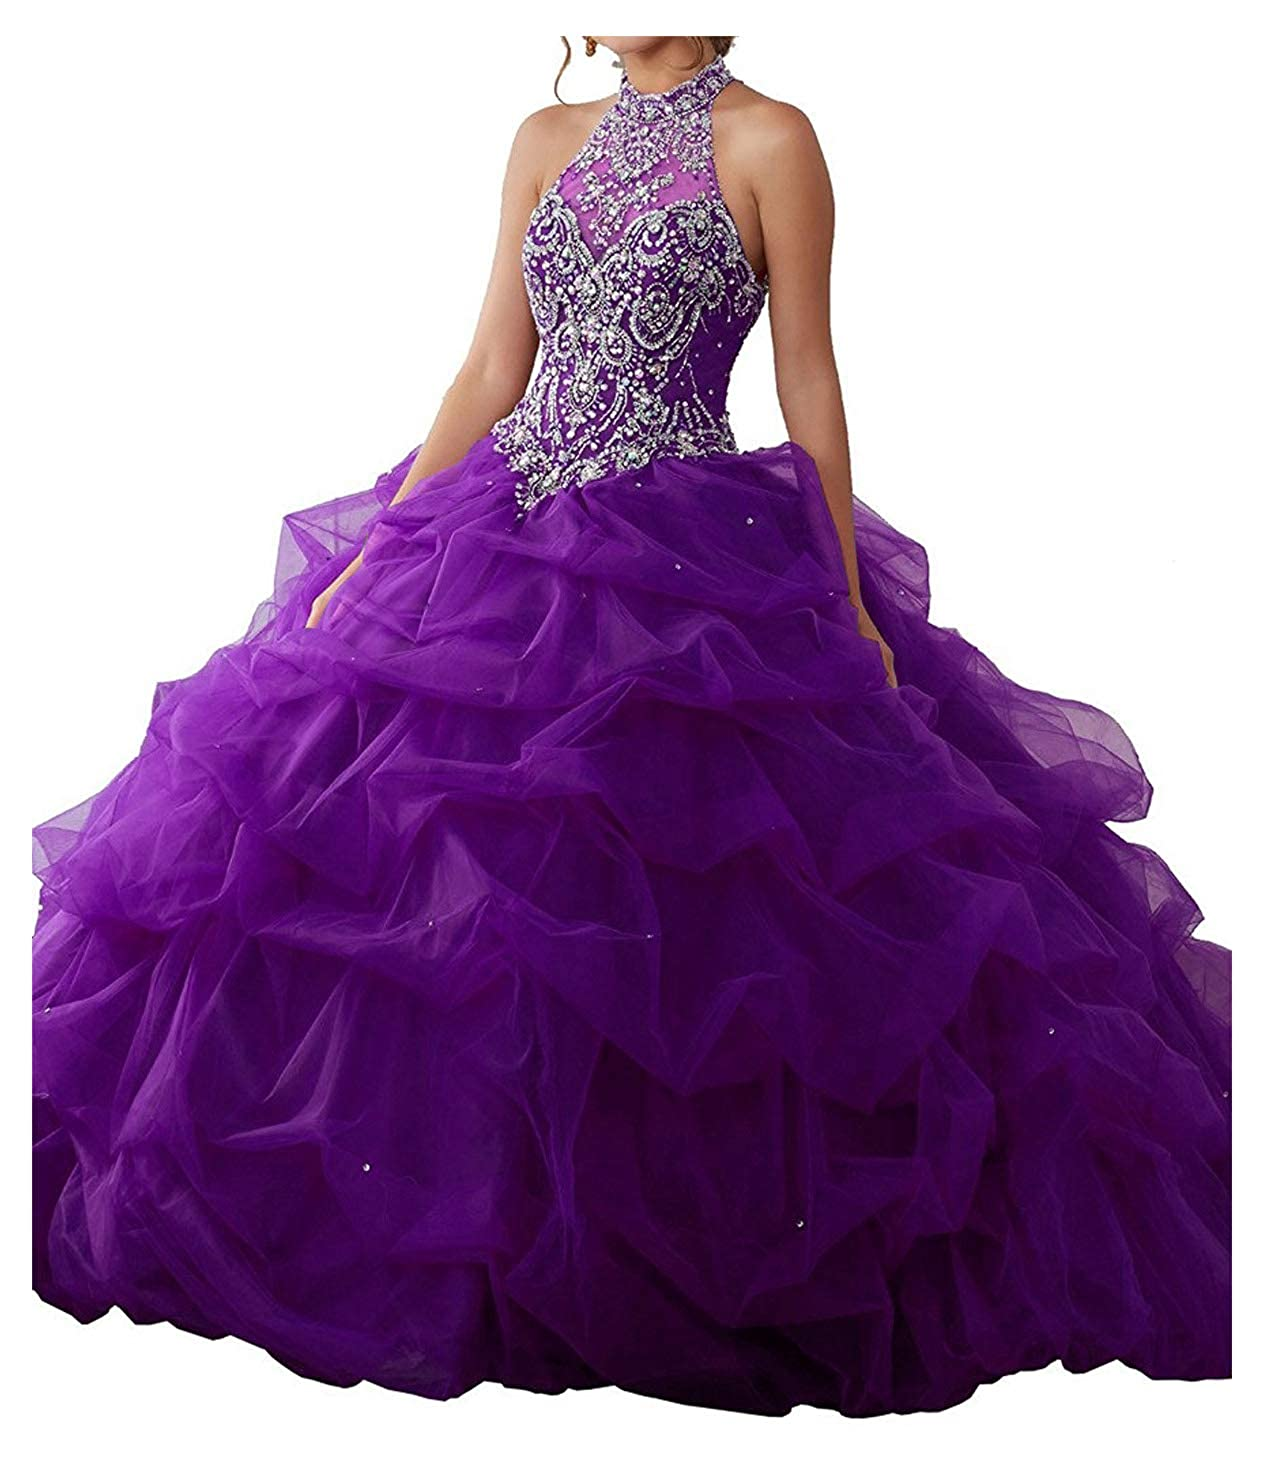 Purple Yang 2017 Sweet Women High Neck Backless Pageant Girls Quinceanera Dresses